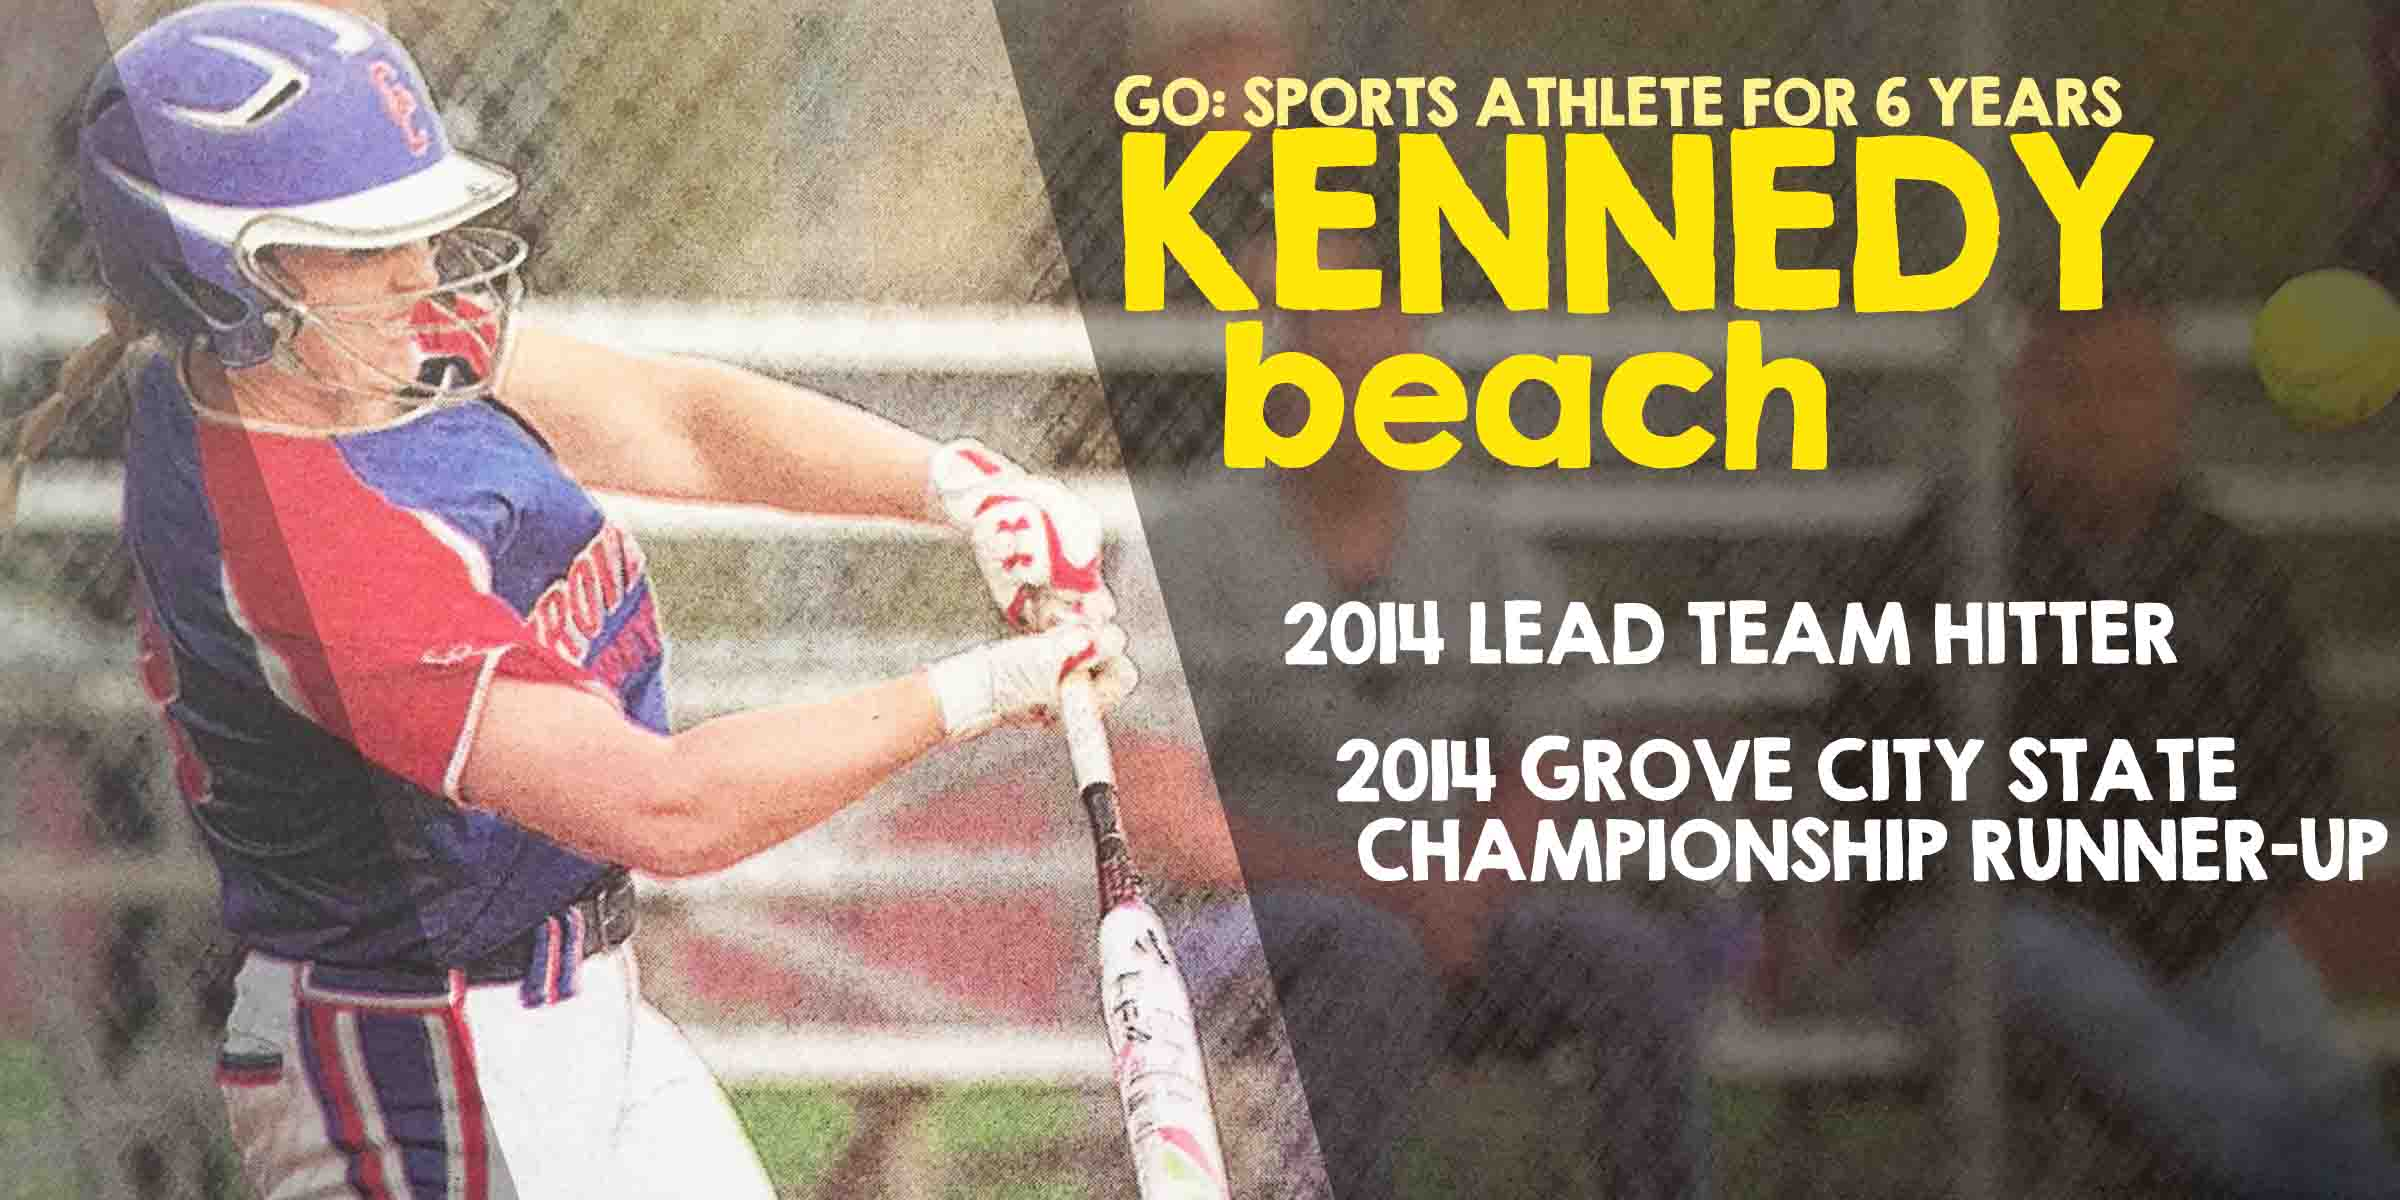 Go Sports Performance Columbus Ohio Powered By Parisi Speed School Athlete Kennedy Beach